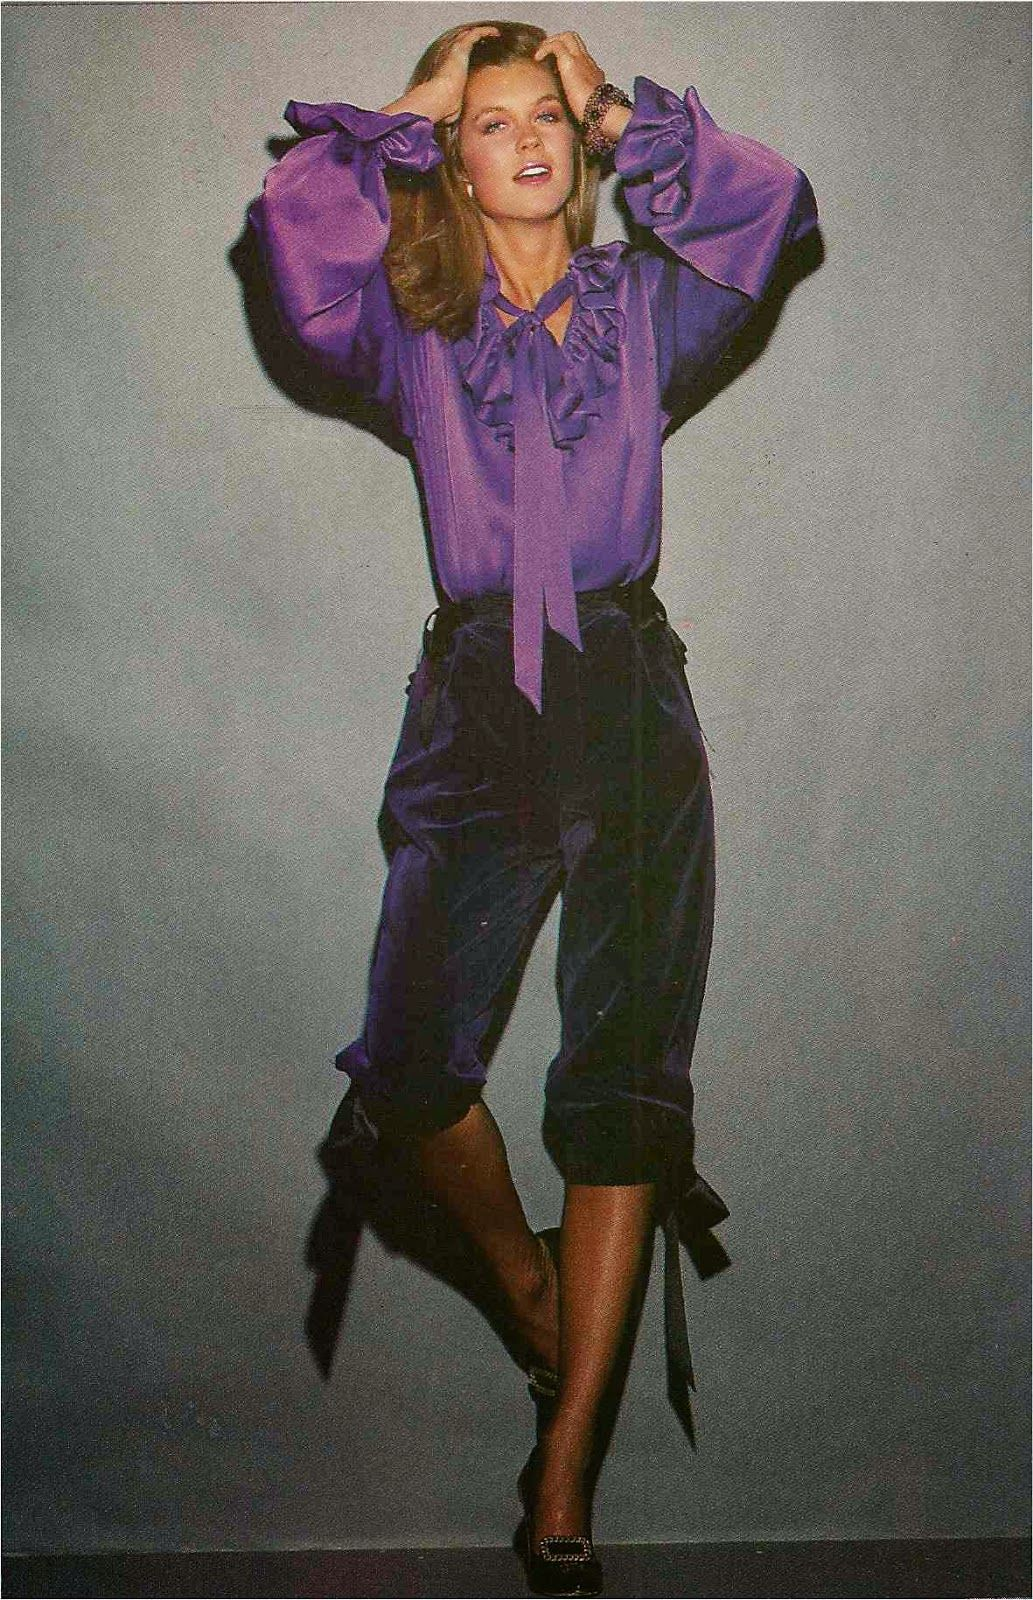 devodotcom: DISCO DRESSING '79,Saint Laurent,deep purple knickers with black moire ribbons full-sleeved ruffle blouse in purple satin